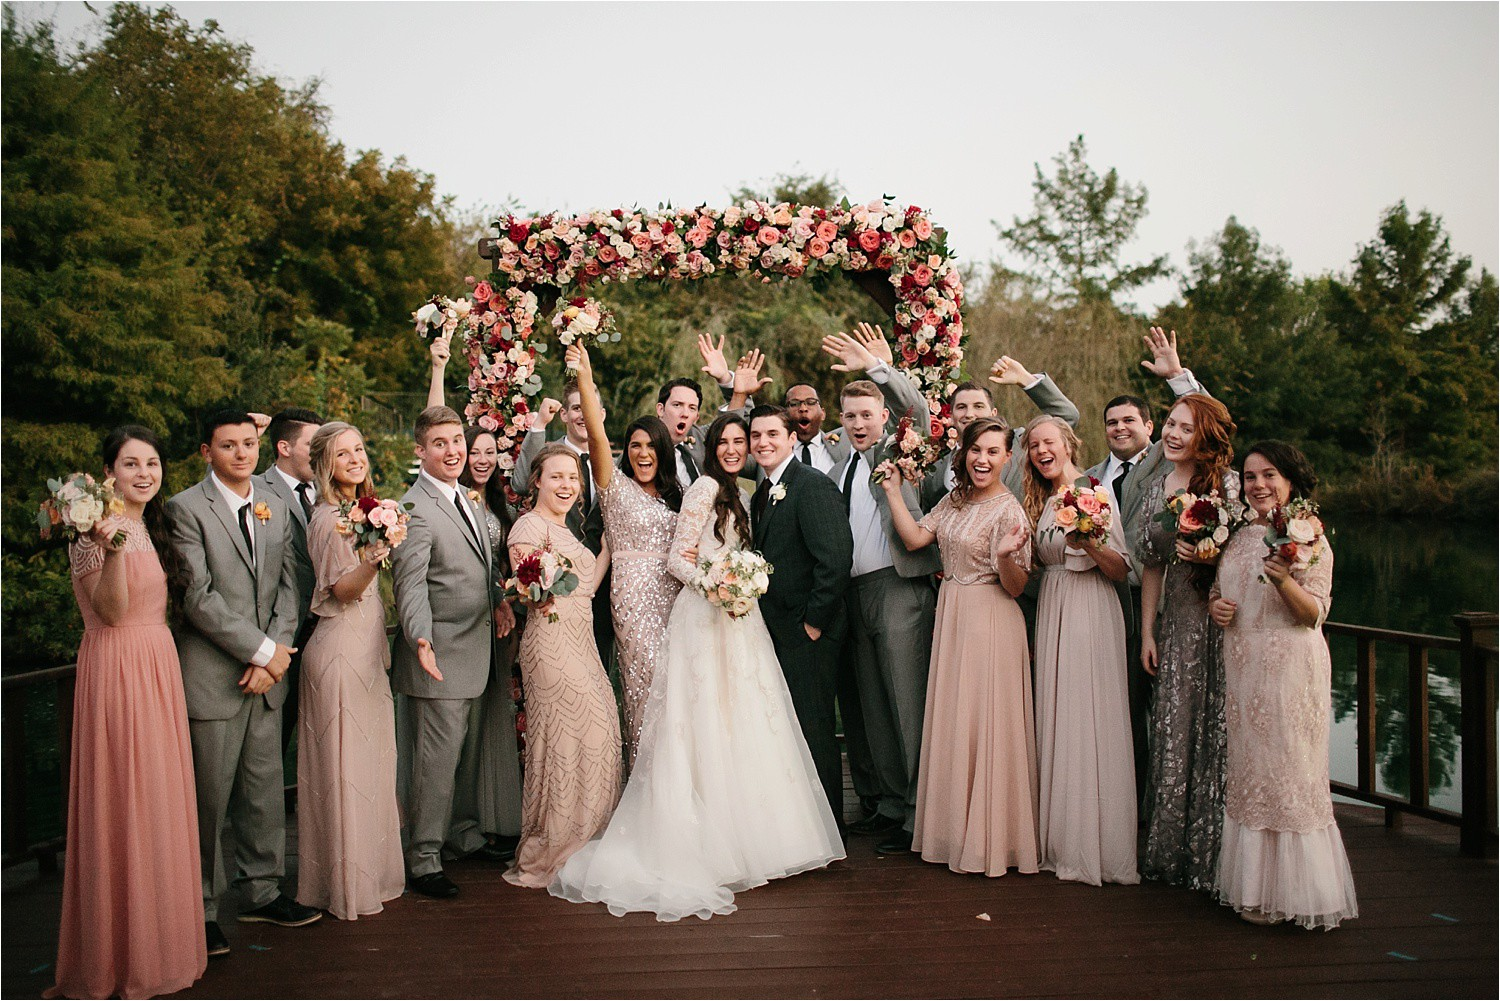 an-elegant-family-ranch-wedding-on-lake-worth-with-burgundy-apricot-and-blush-inspired-decorations-by-north-texas-wedding-photographer-rachel-meagan-photography-_-48